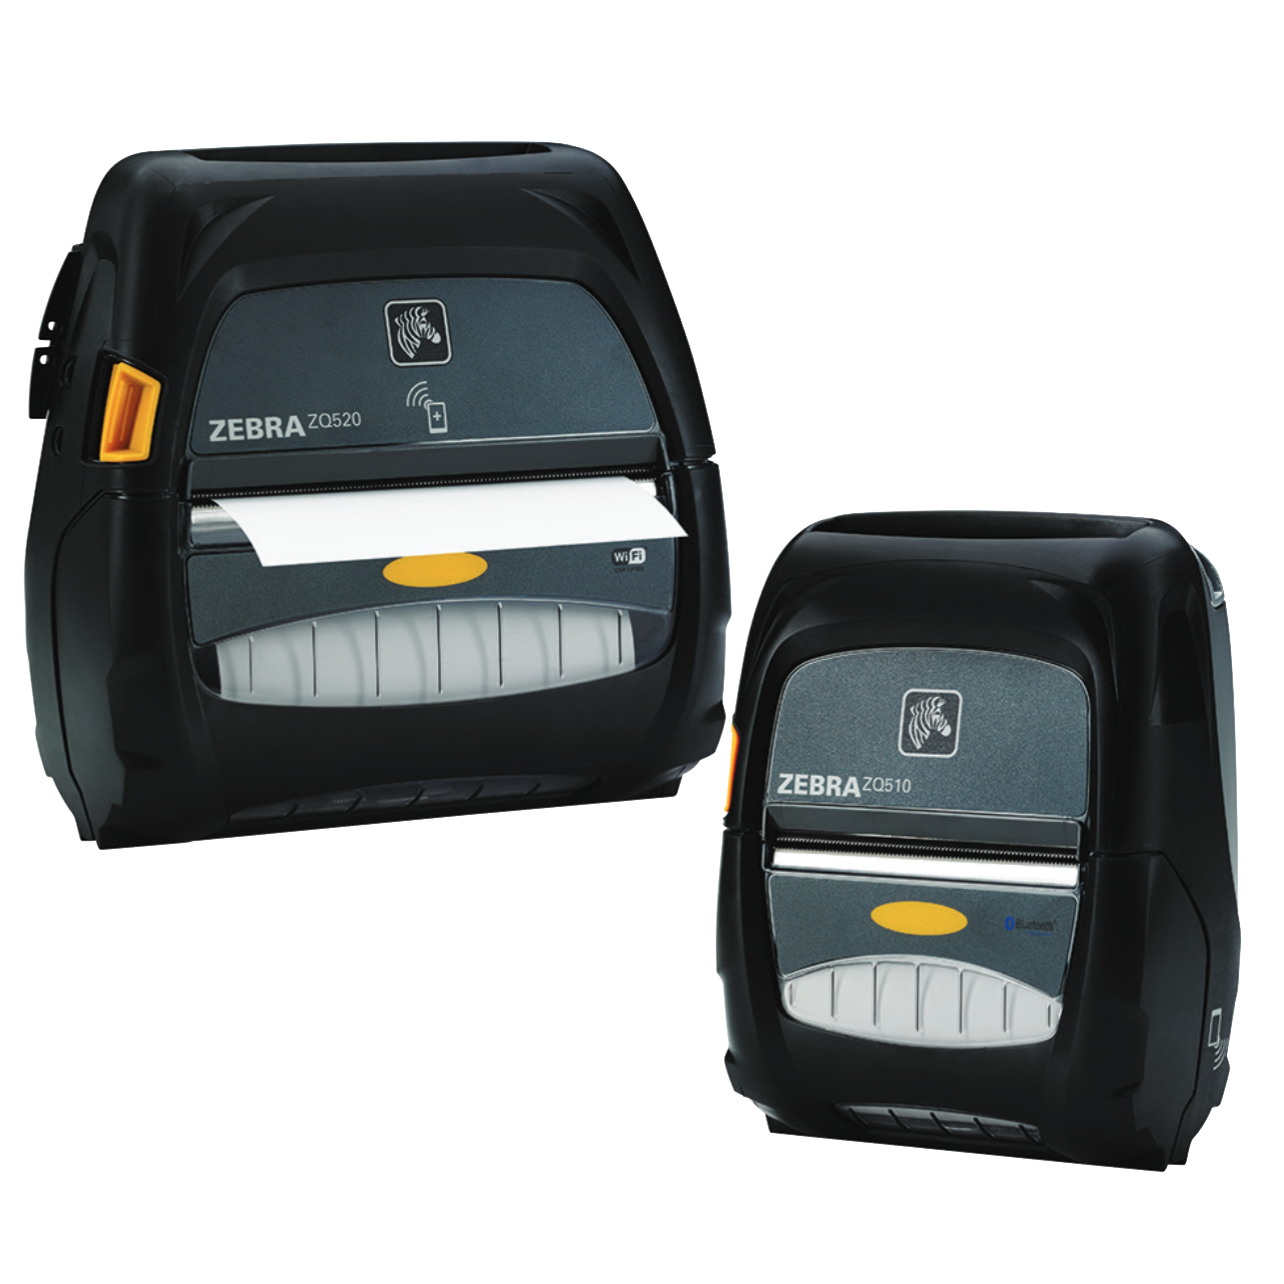 Zebra ZQ500 series of mobile printers